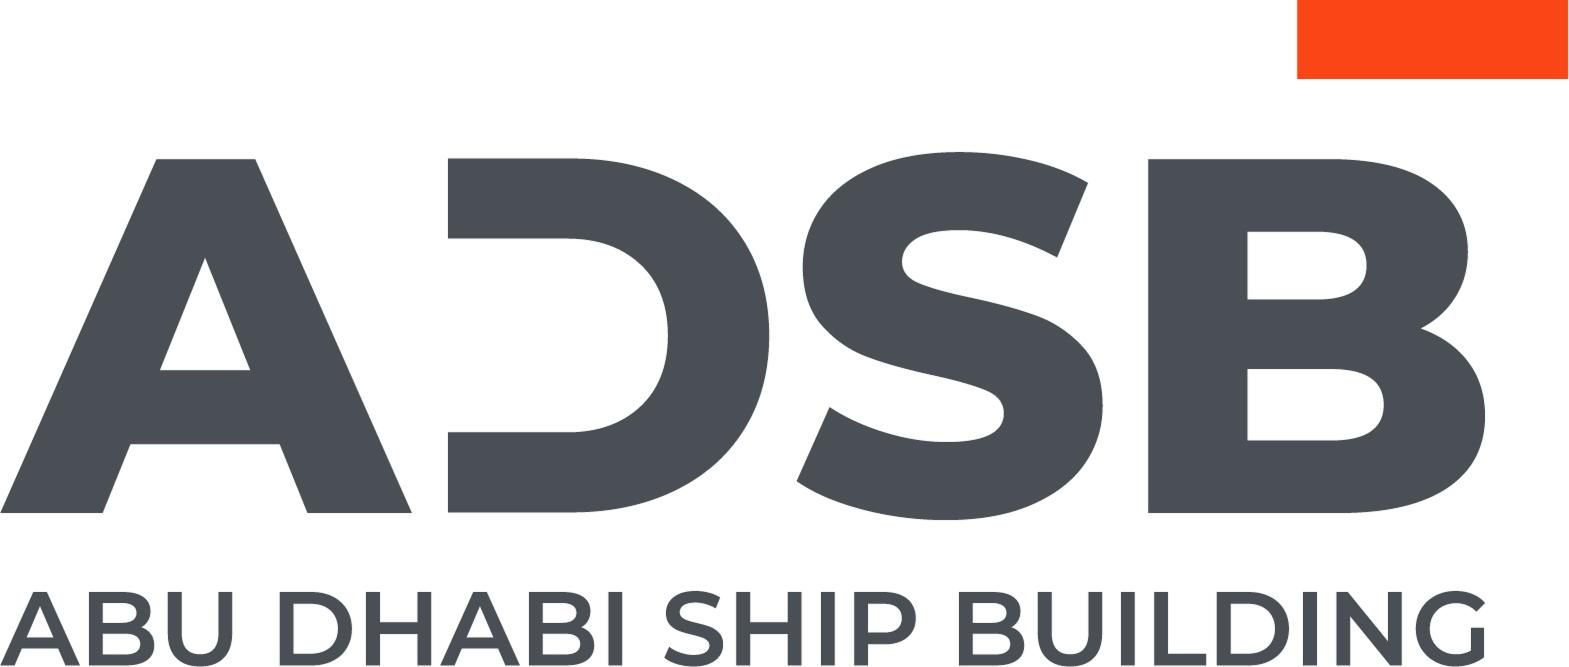 Abu Dhabi Ship Building